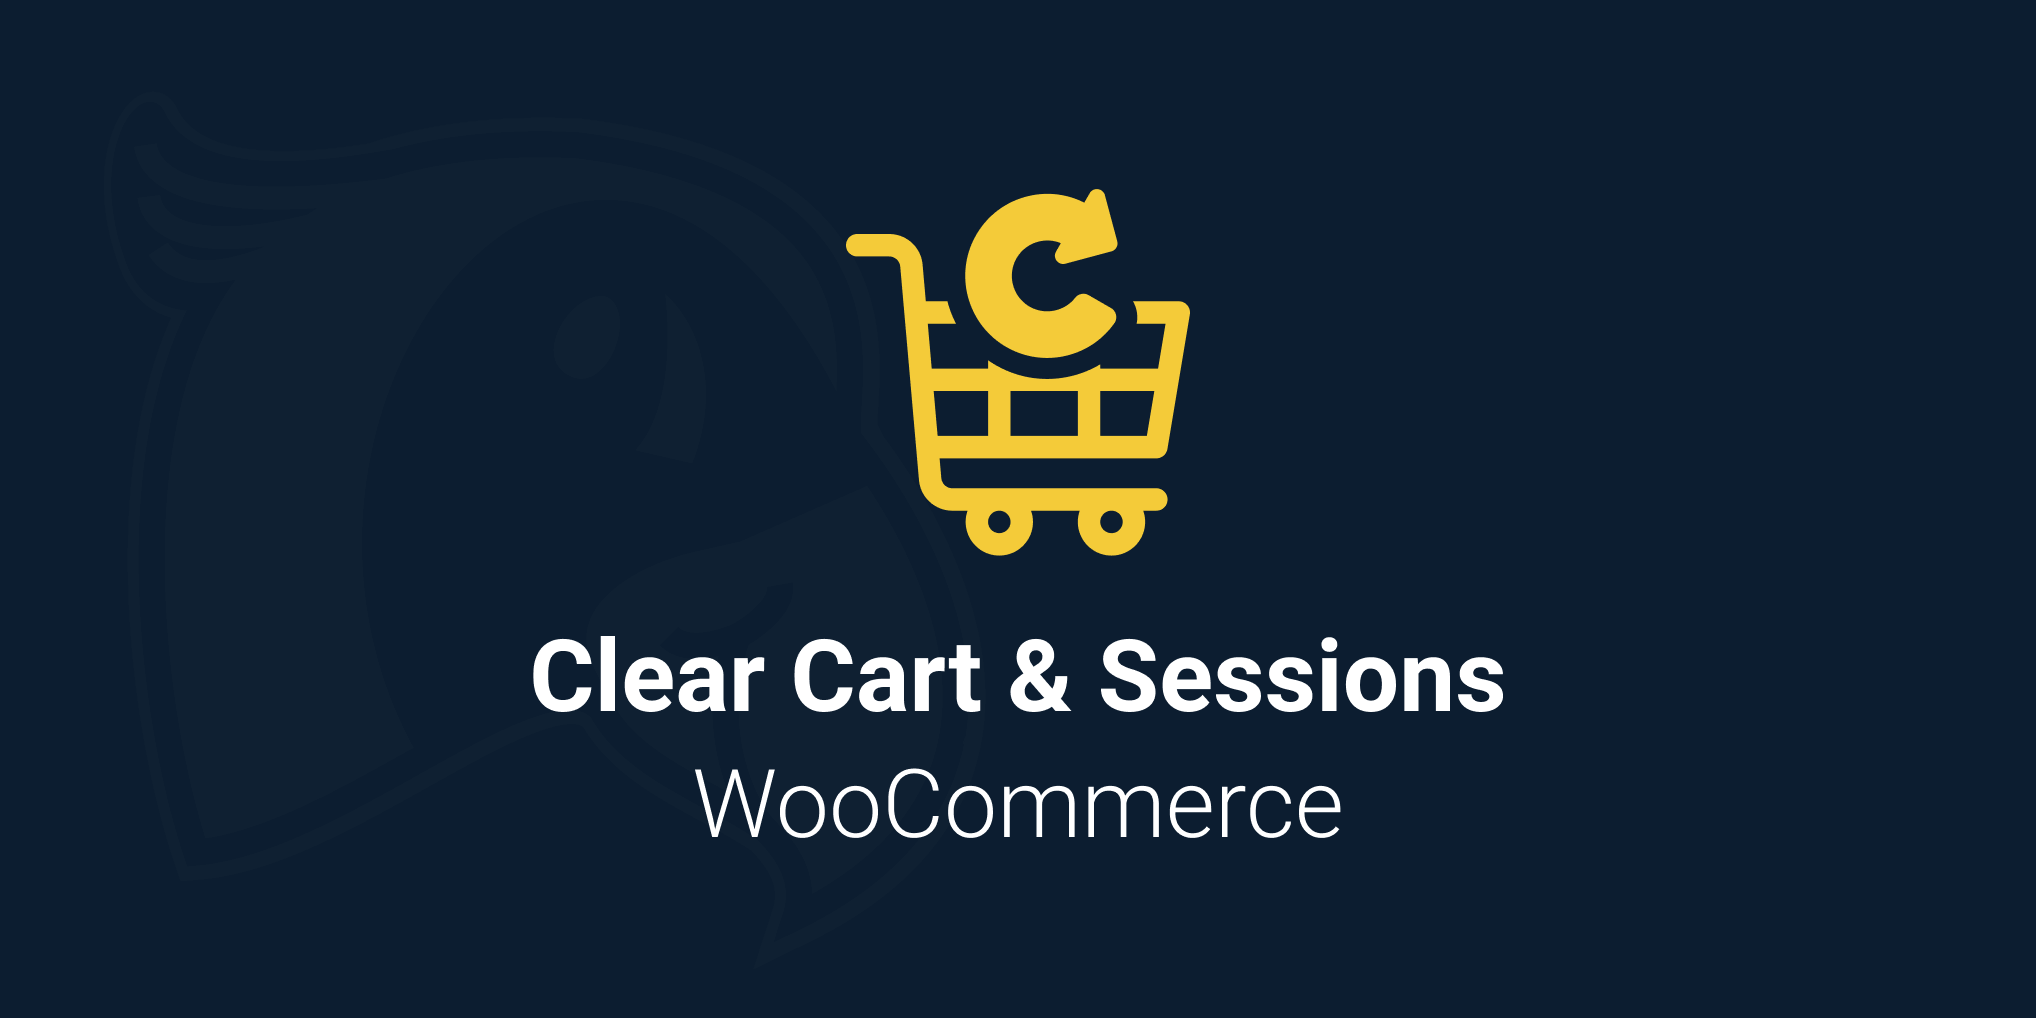 Clear Cart & Sessions logo for WooCommerce